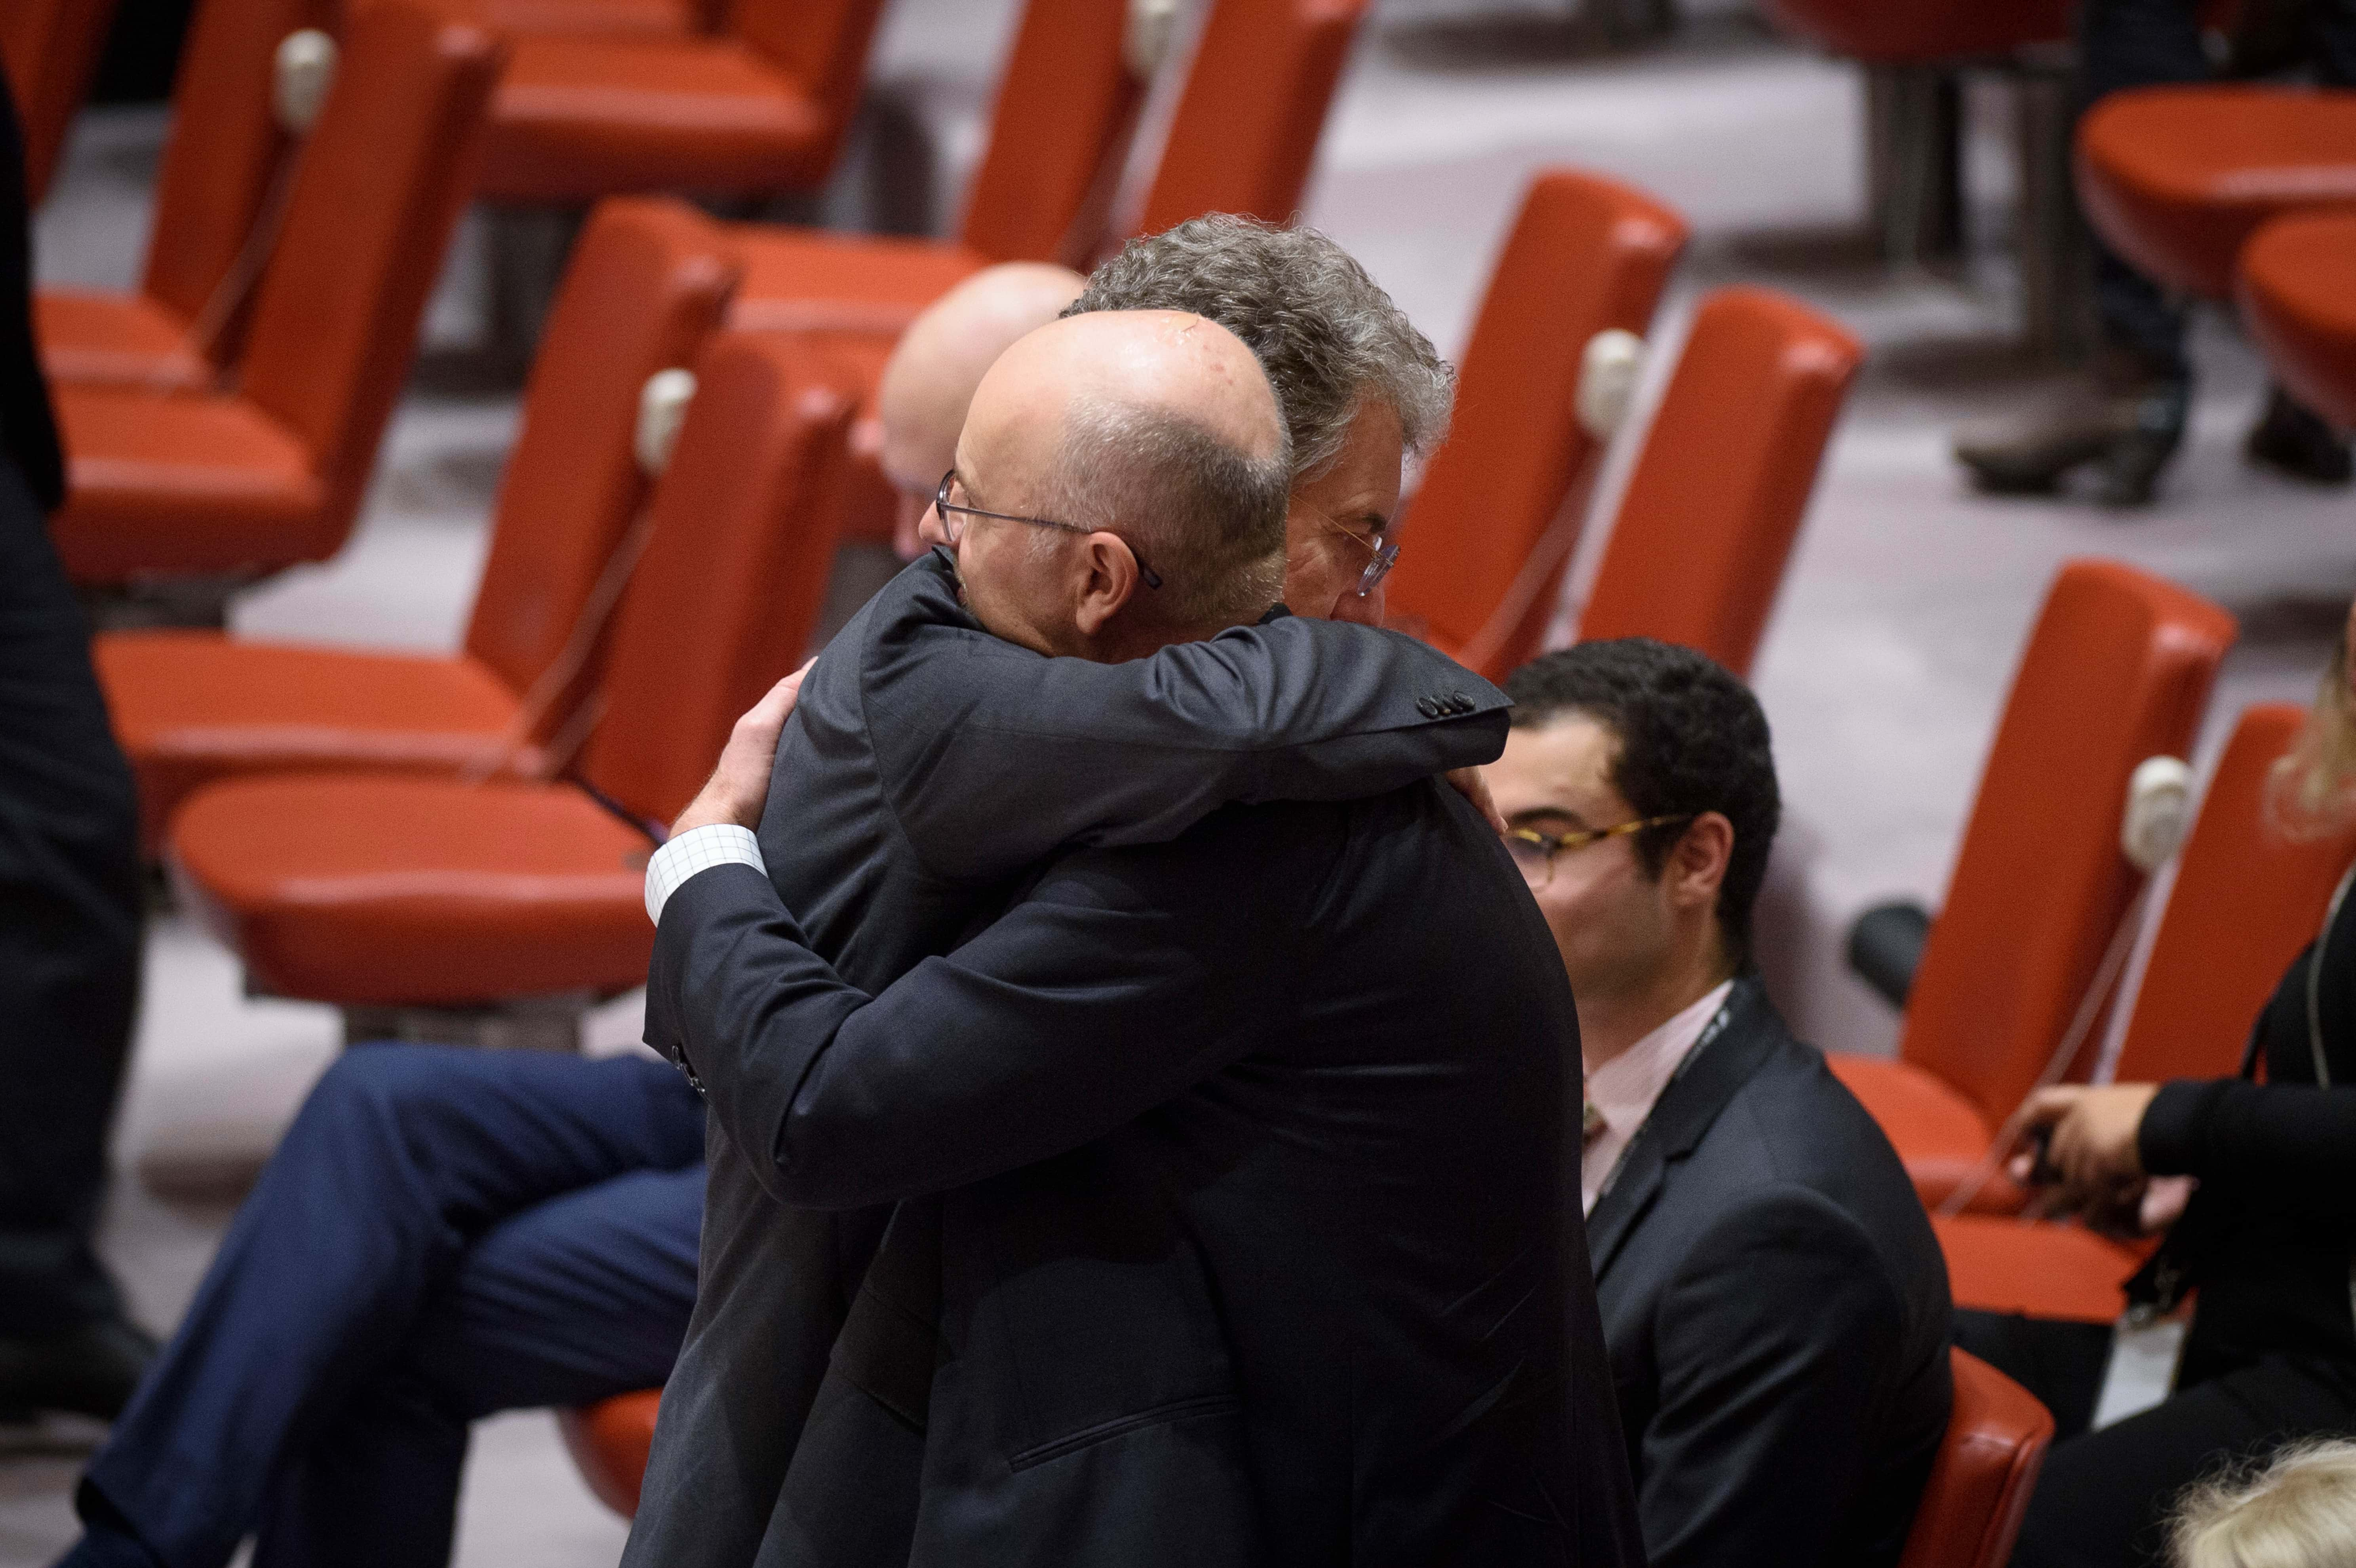 Christoph Heusgen (left), Permanent Representative of Germany to the United Nations and President of the Security Council for the month of March, hugs Craig John Hawke, Permanent Representative of New Zealand.